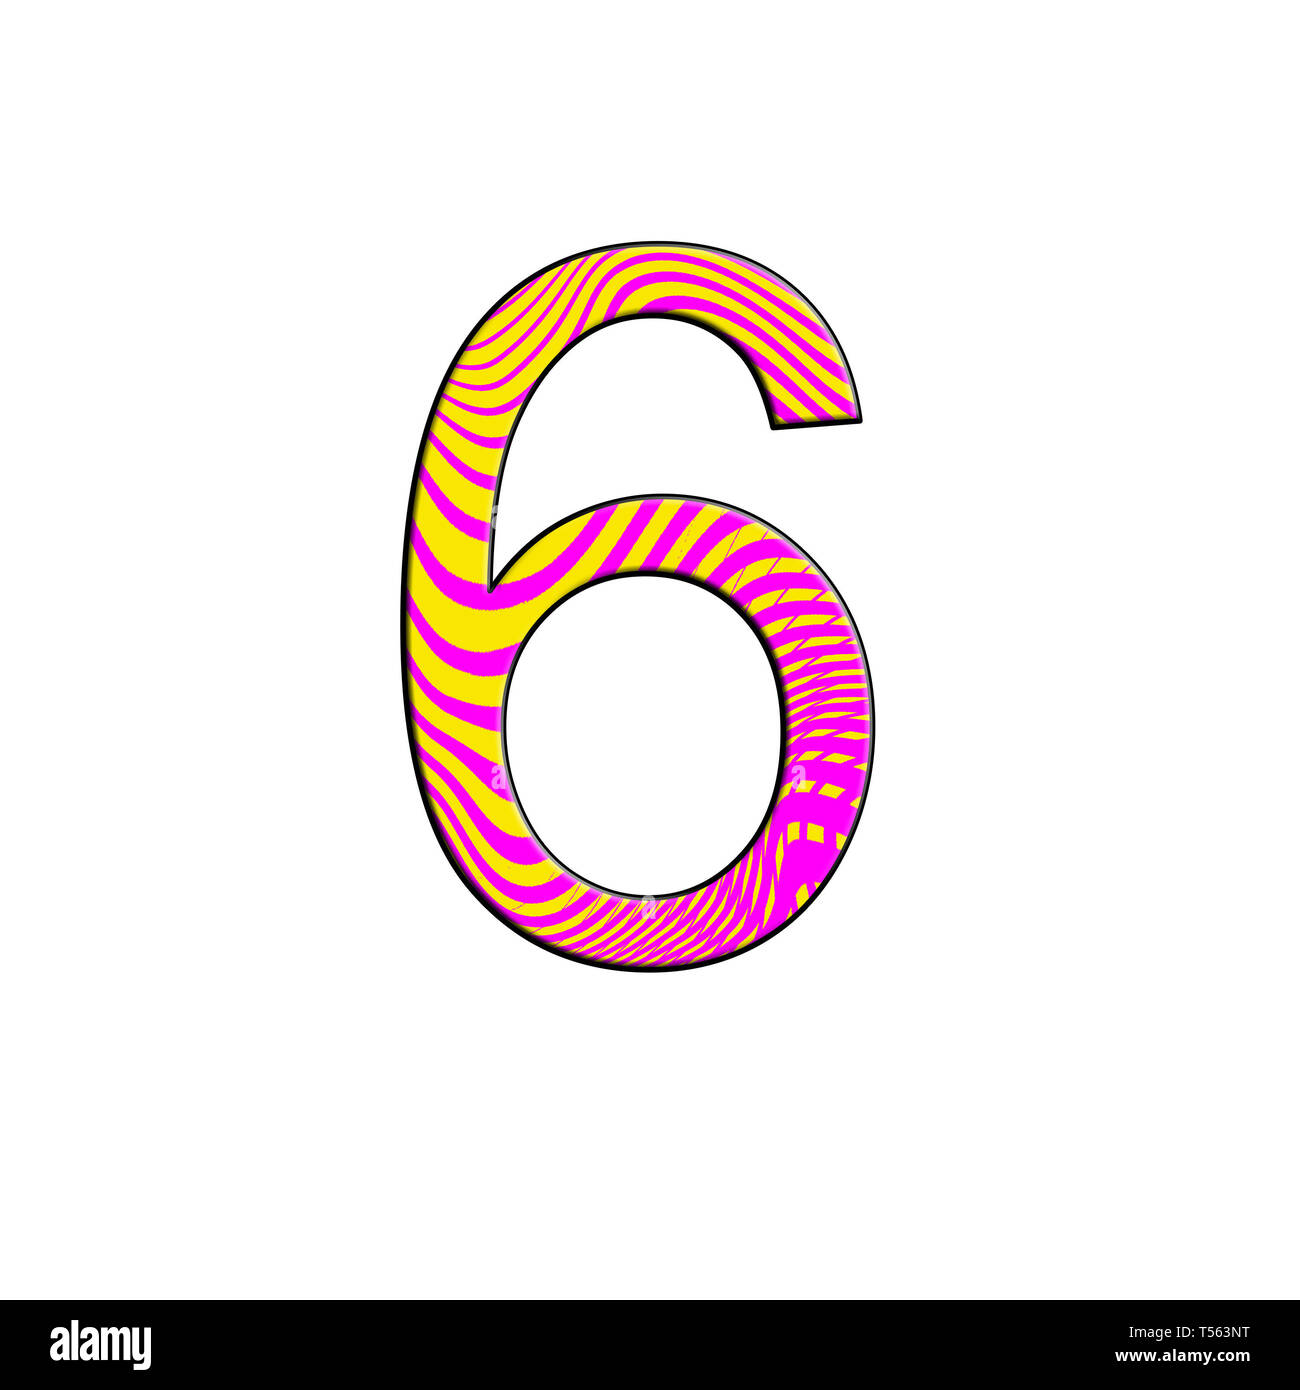 illustration painted pink and yellow color , elements design, number 6 - Stock Image